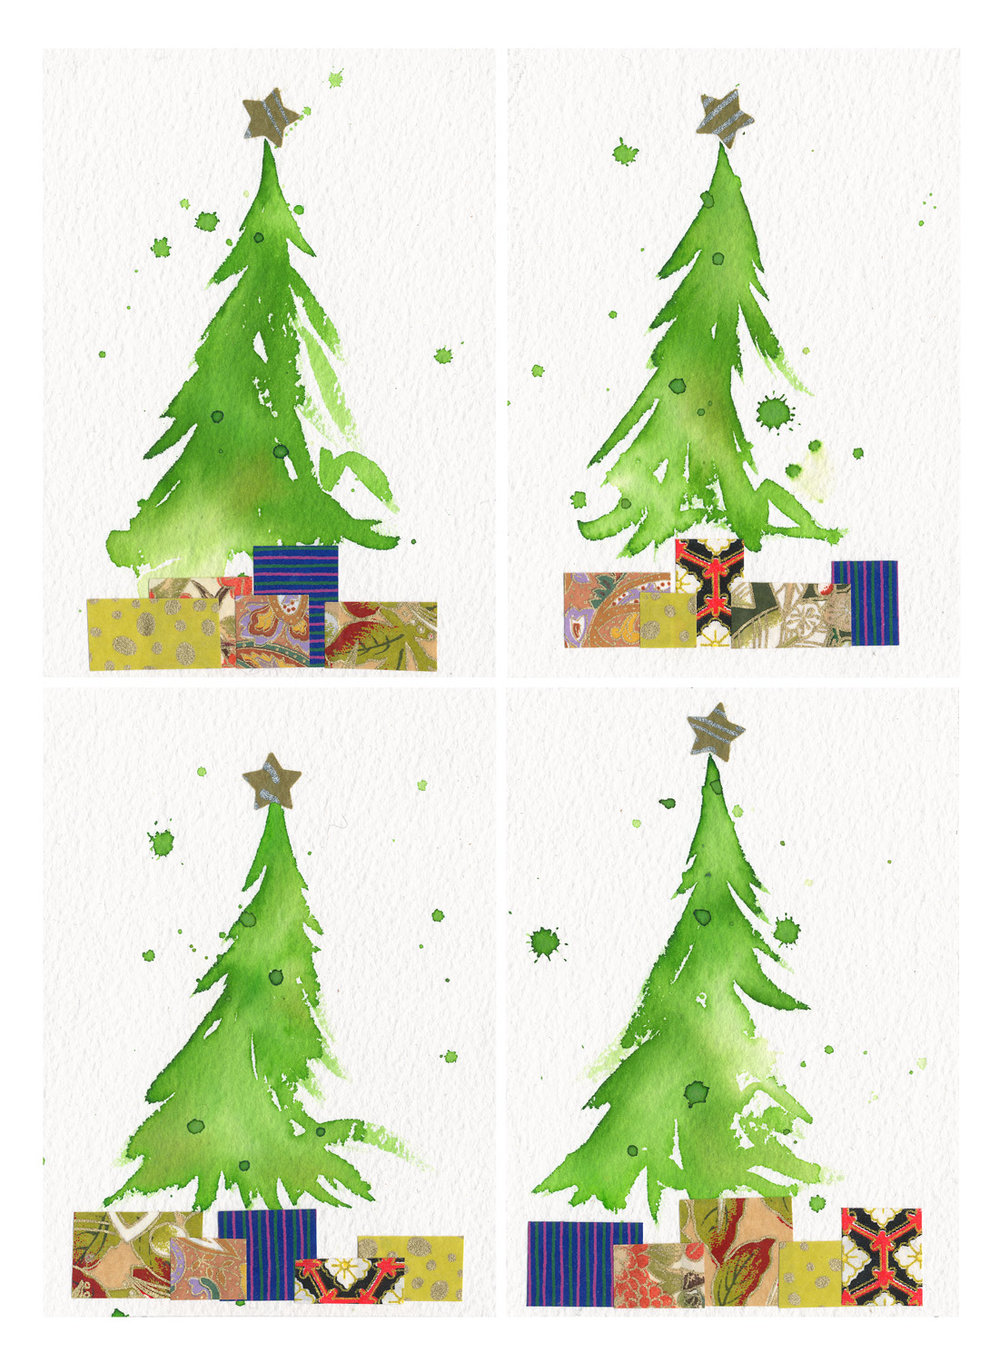 Benjamin-Edward-Holiday-Card-Christmas-Tree-Watercolour-Illustration.jpg